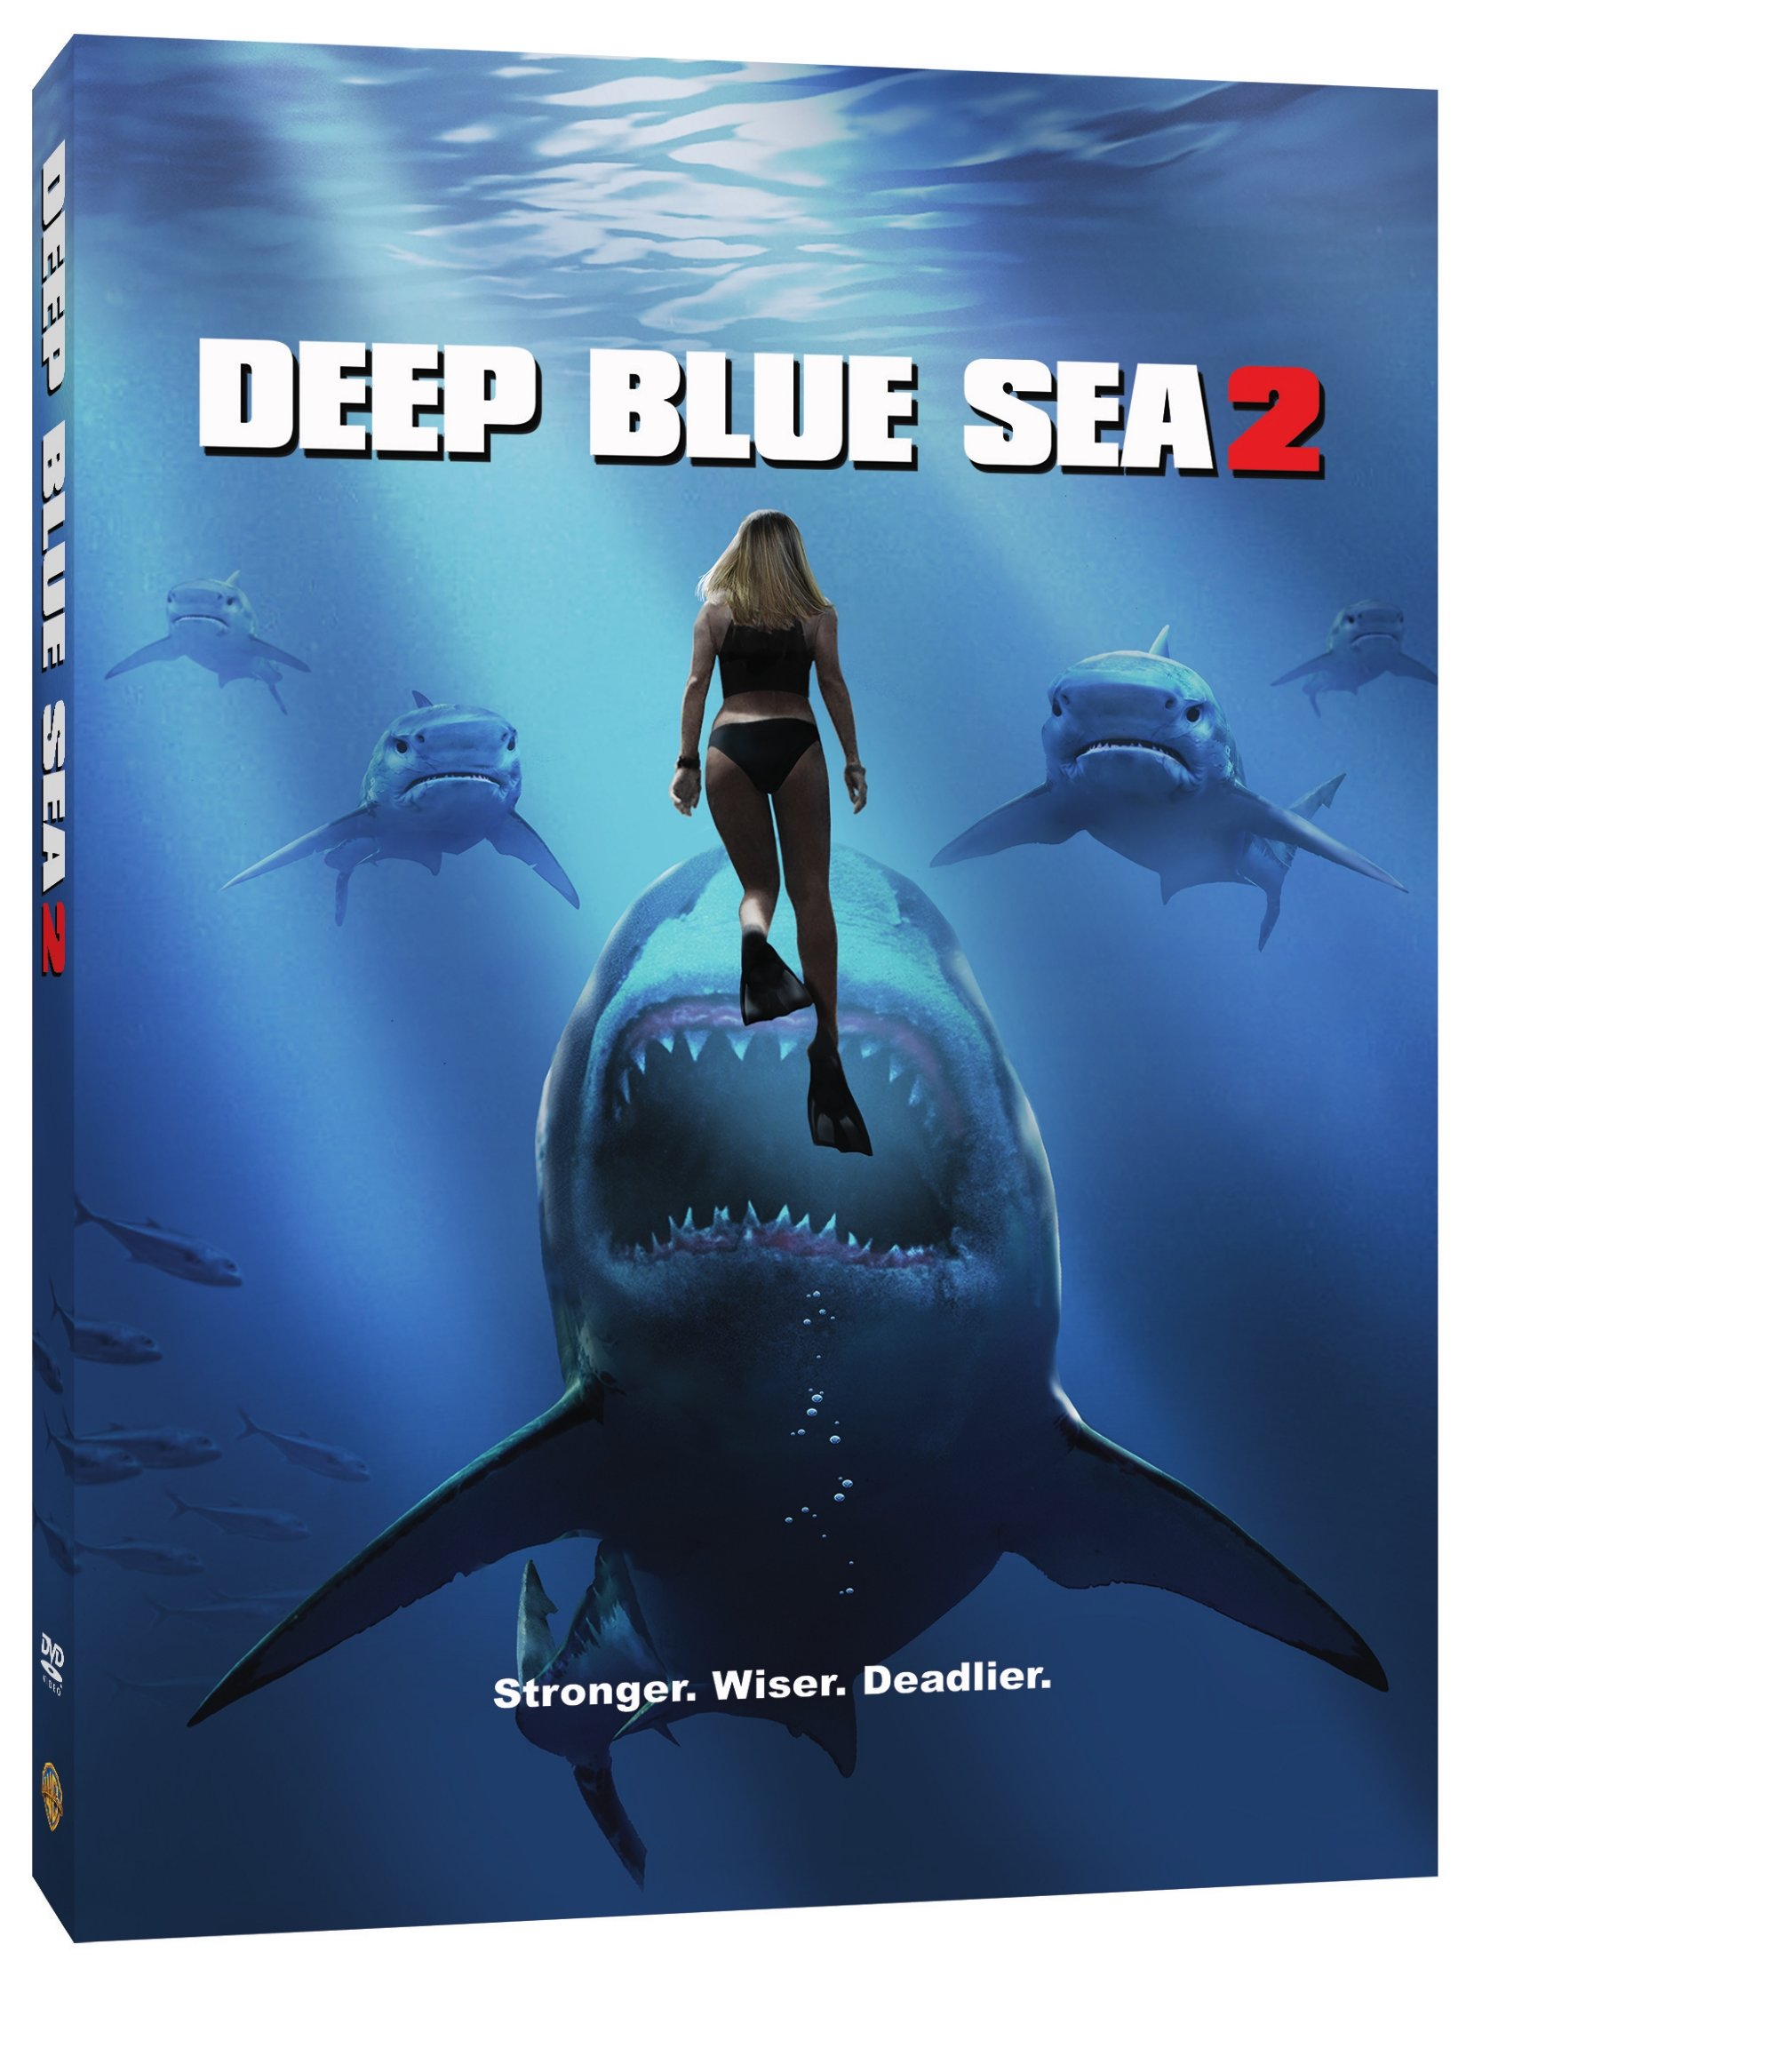 Get Your Shark-Fin Hat Ready — DEEP BLUE SEA 2 is coming